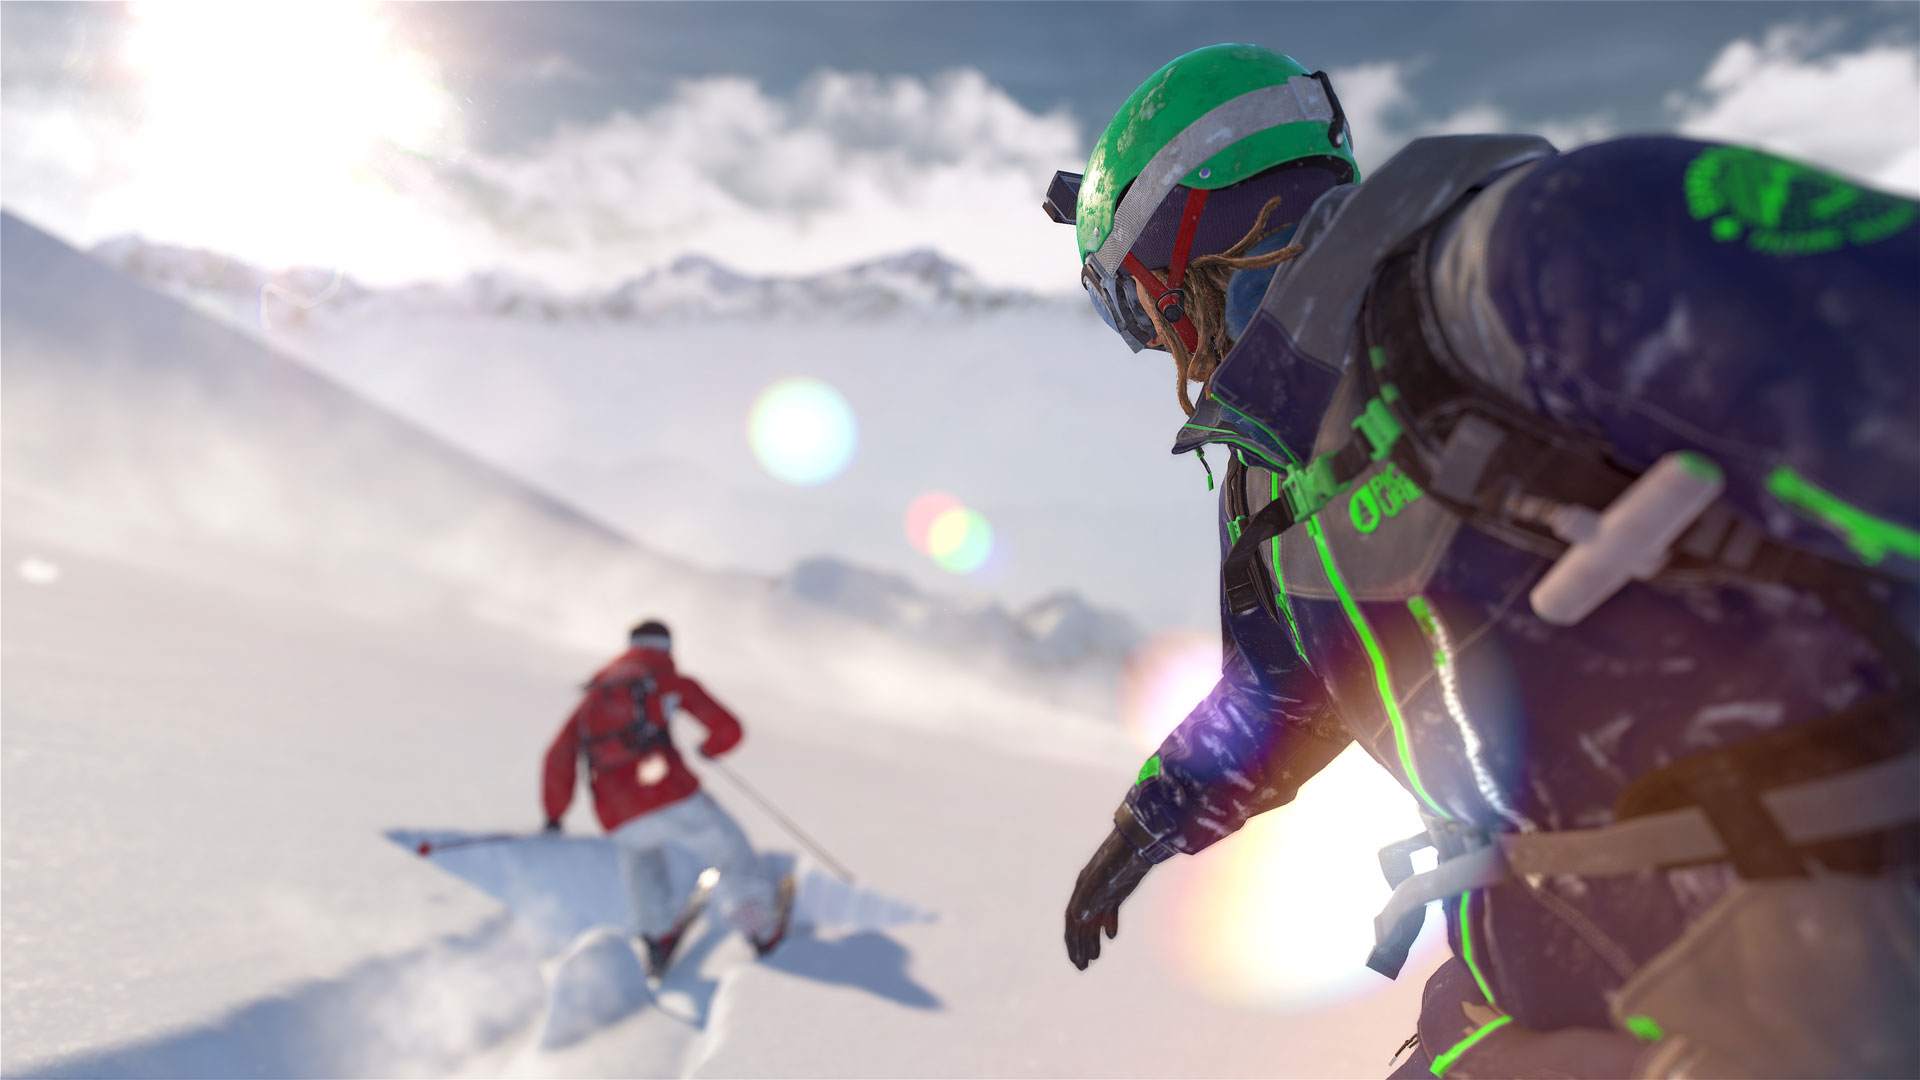 Download Steep Game HD k Wallpapers In x Screen Resolution